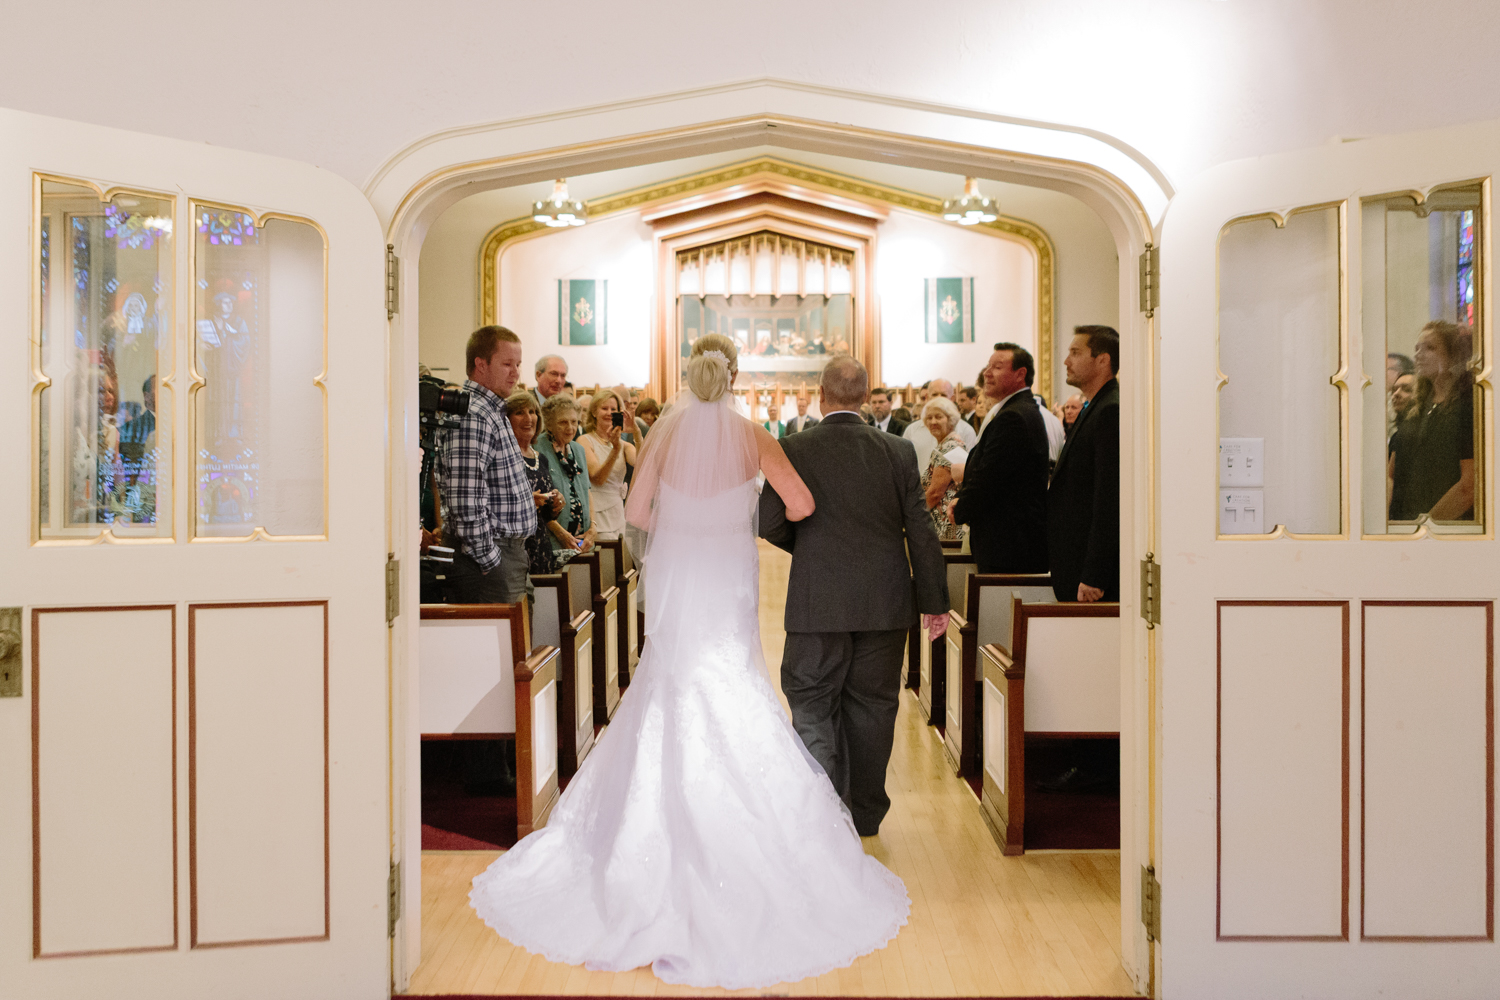 BridalPulse - Golf Lovers' Country Club Wedding - bride walking down the aisle with father